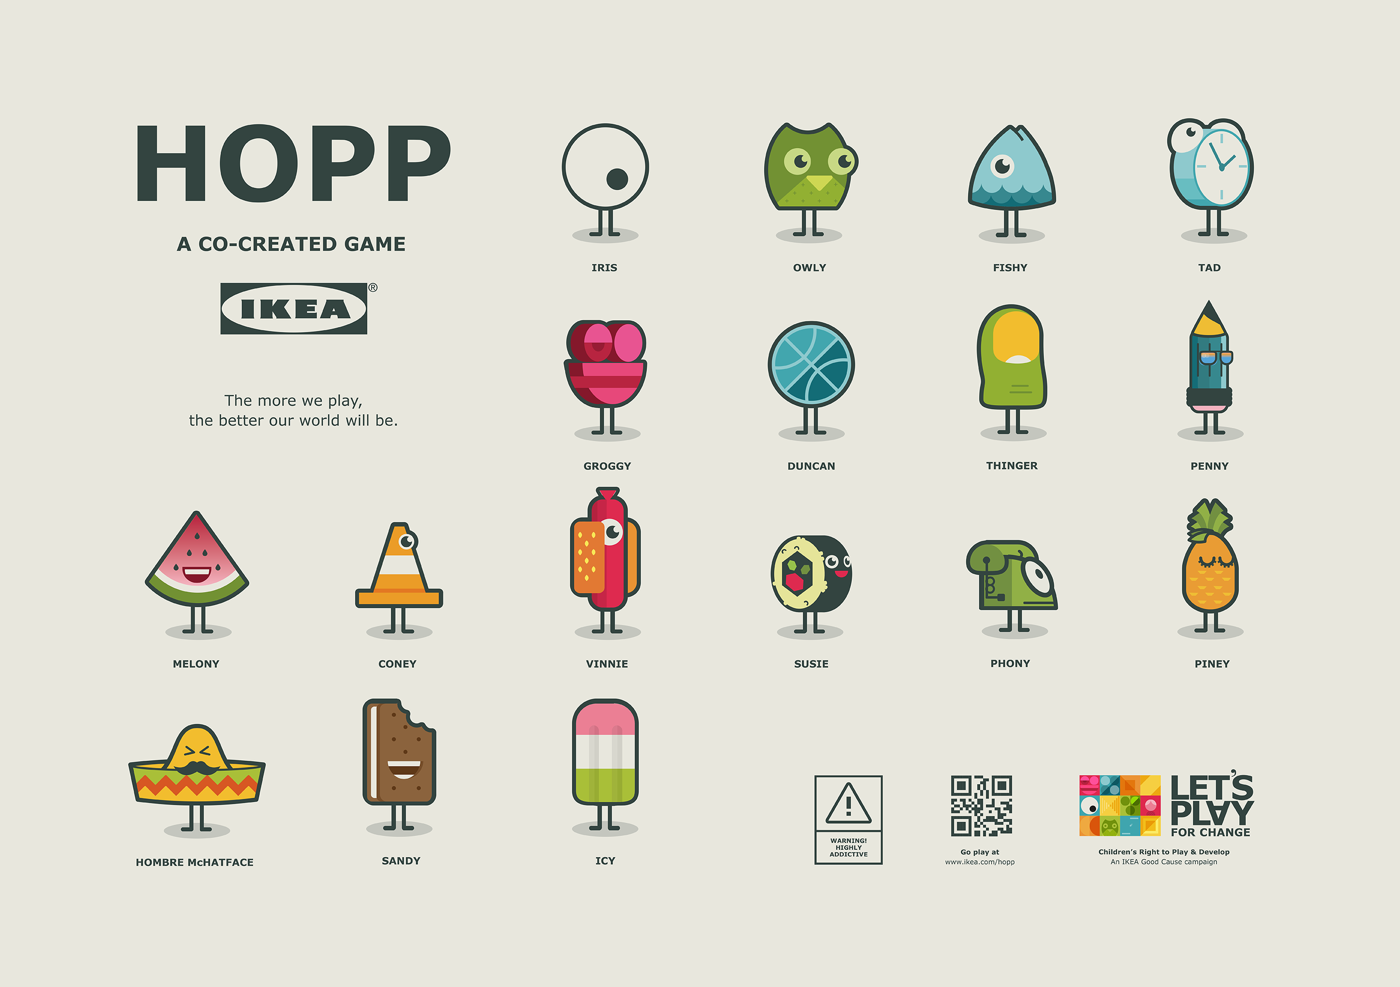 All the playable characters from the Hopp co-created game for IKEA